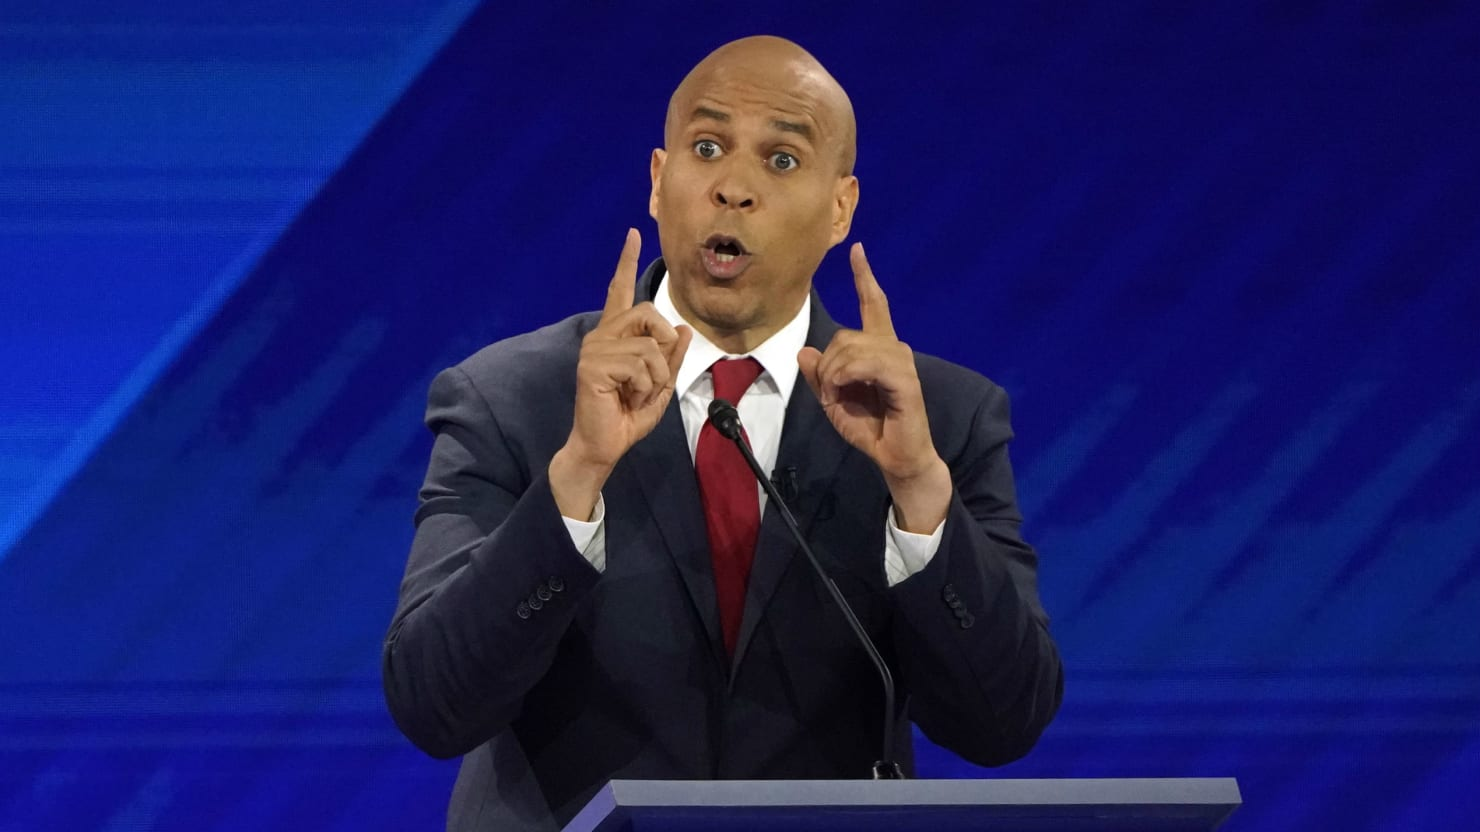 Cory Booker's Campaign Issues Dire Warning About His Presidential Run